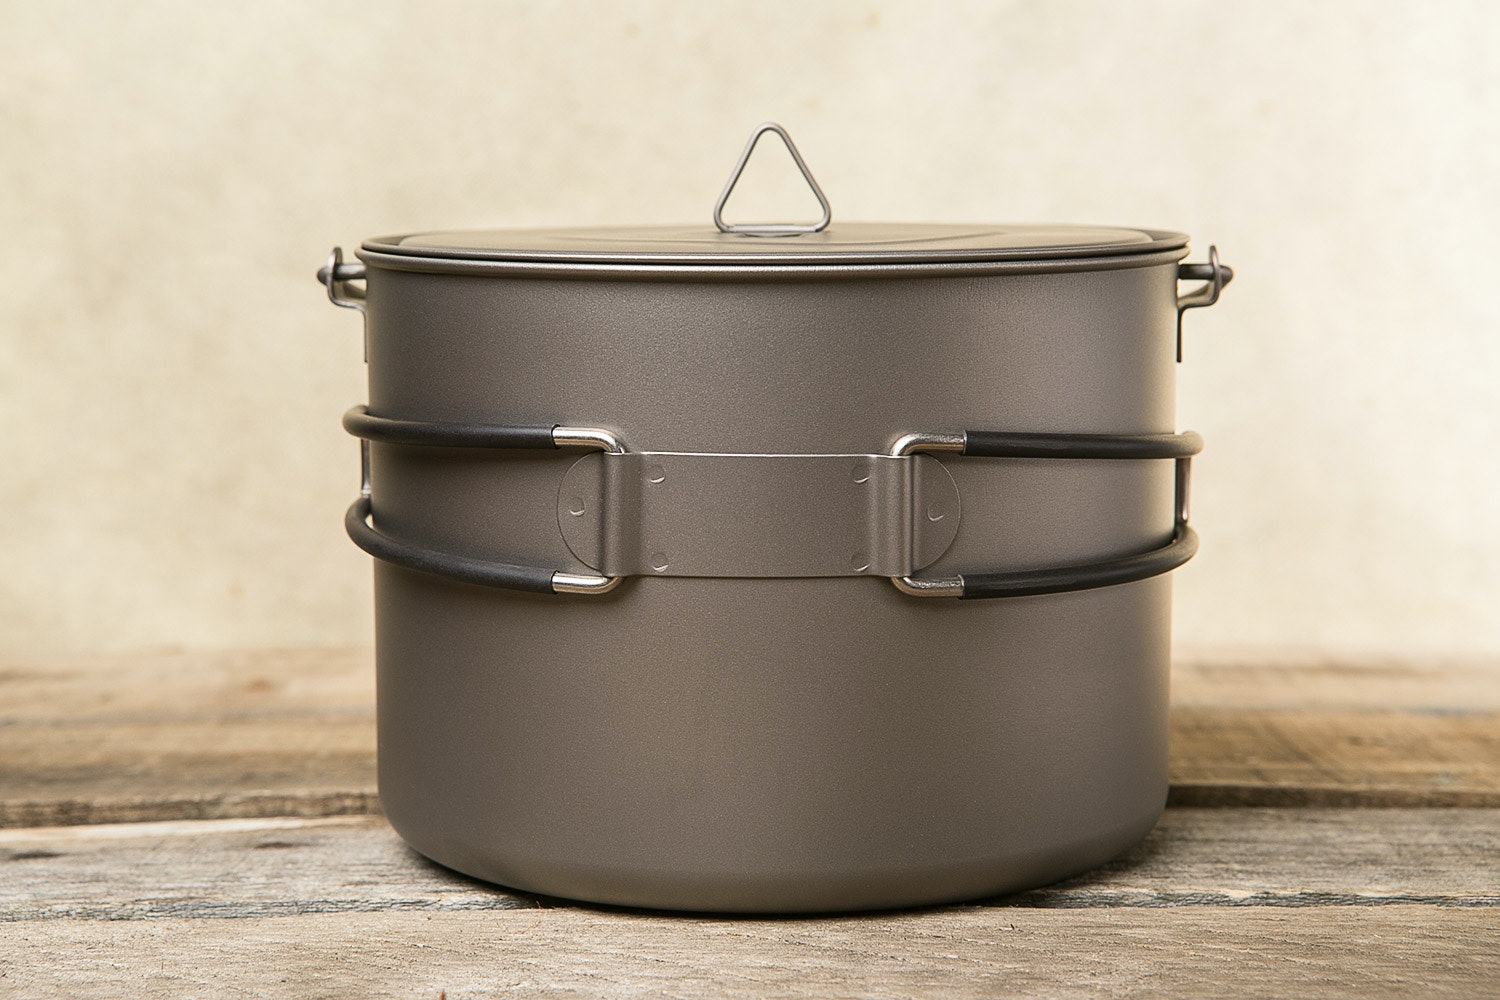 Toaks Titanium 1600ml Pot with Bail Handle